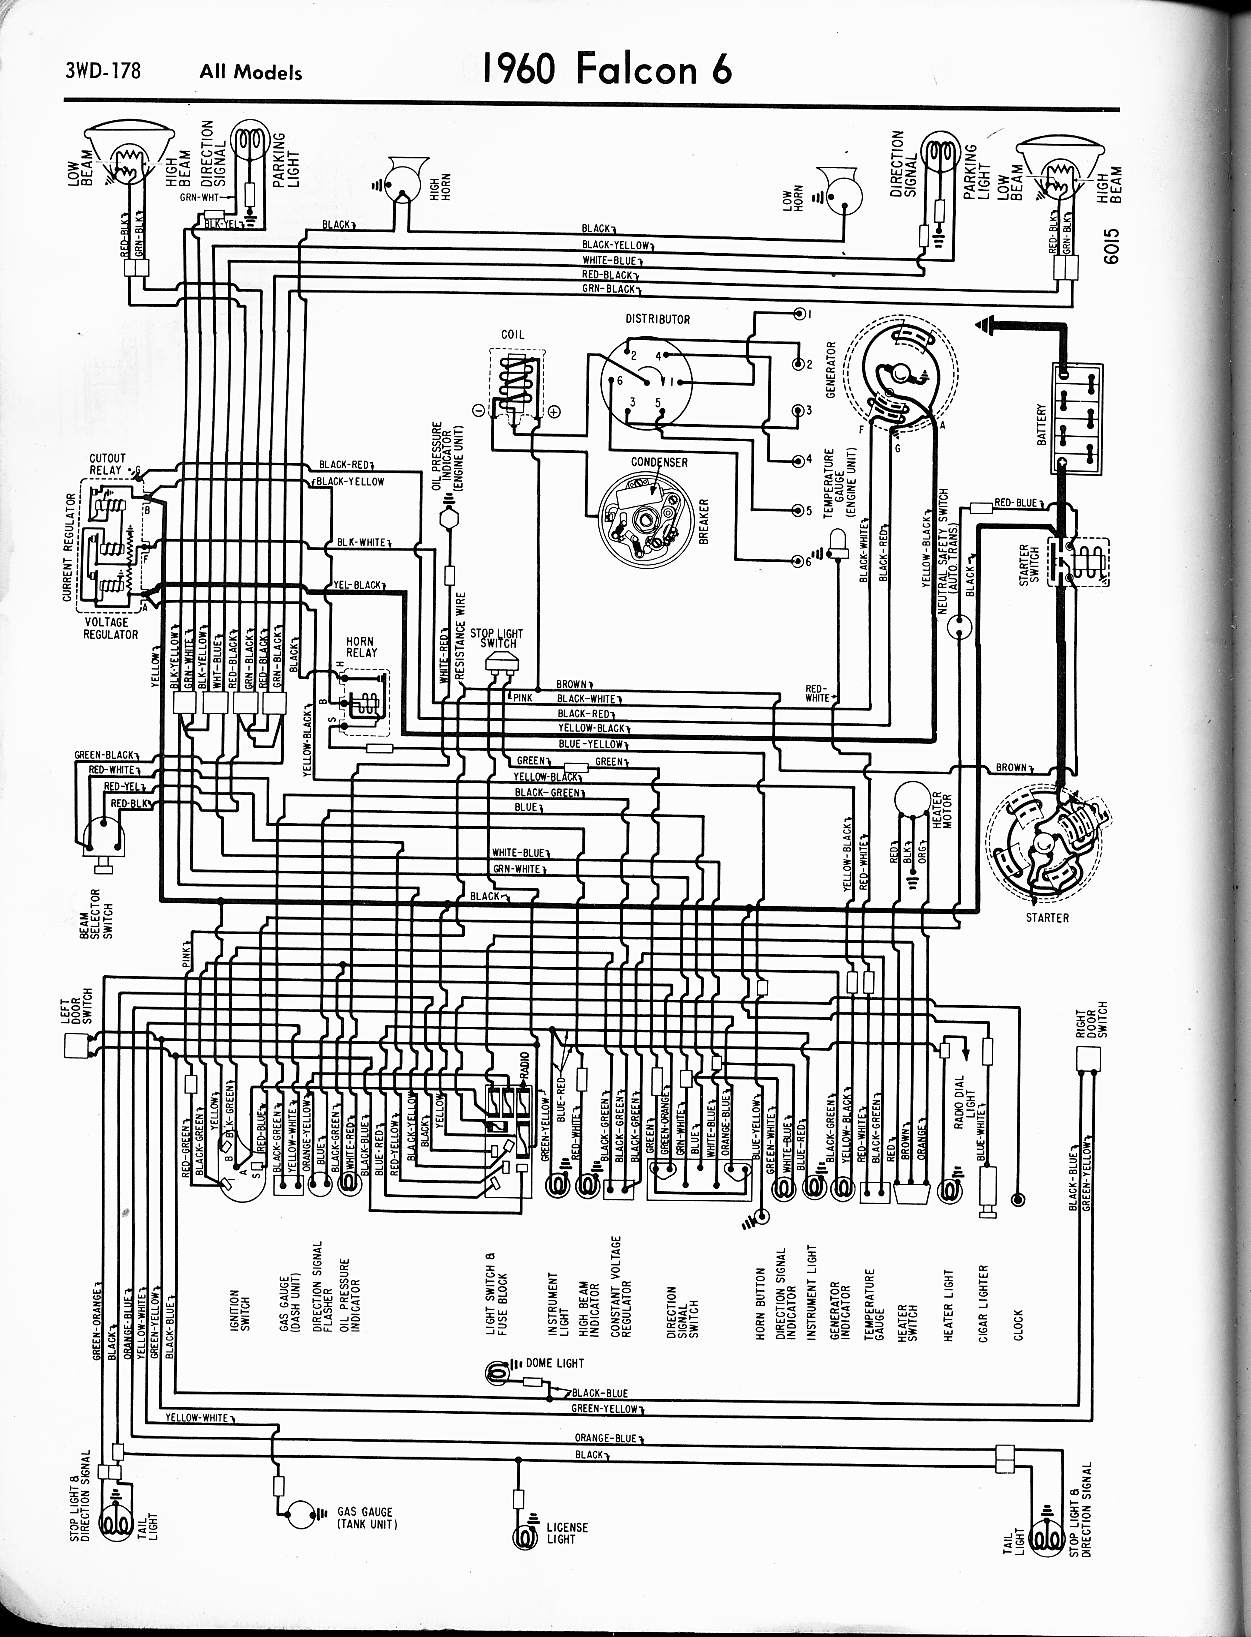 57 65 ford wiring diagrams 1978 Ford Truck Wiring Diagram 1960 6 cyl falcon